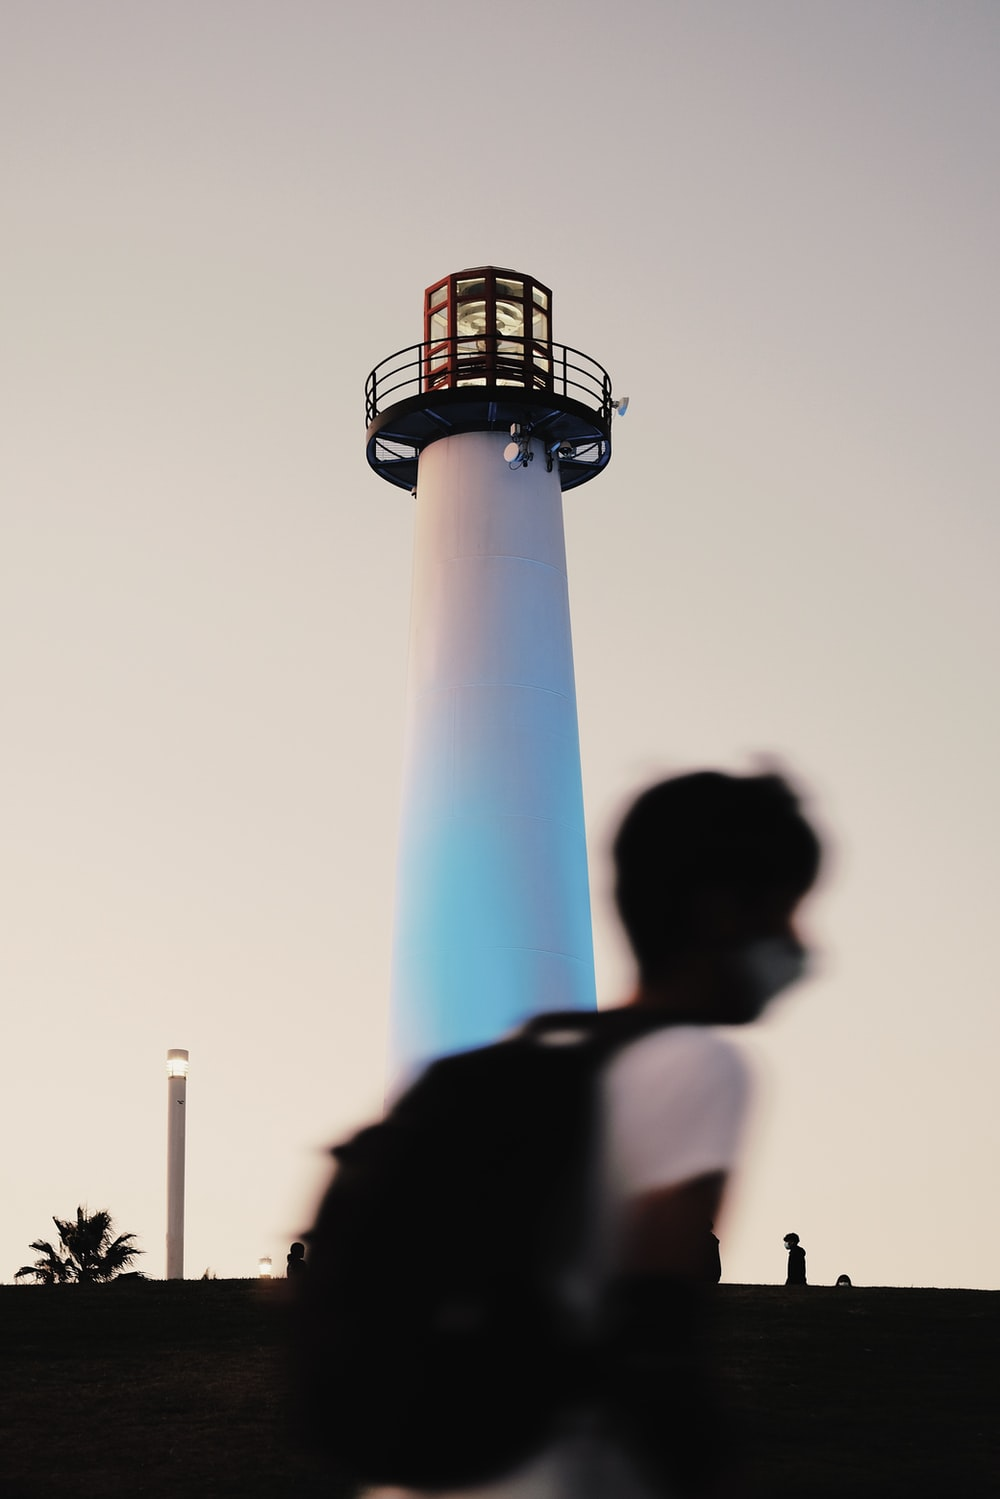 man in white t-shirt standing near white and blue tower during daytime